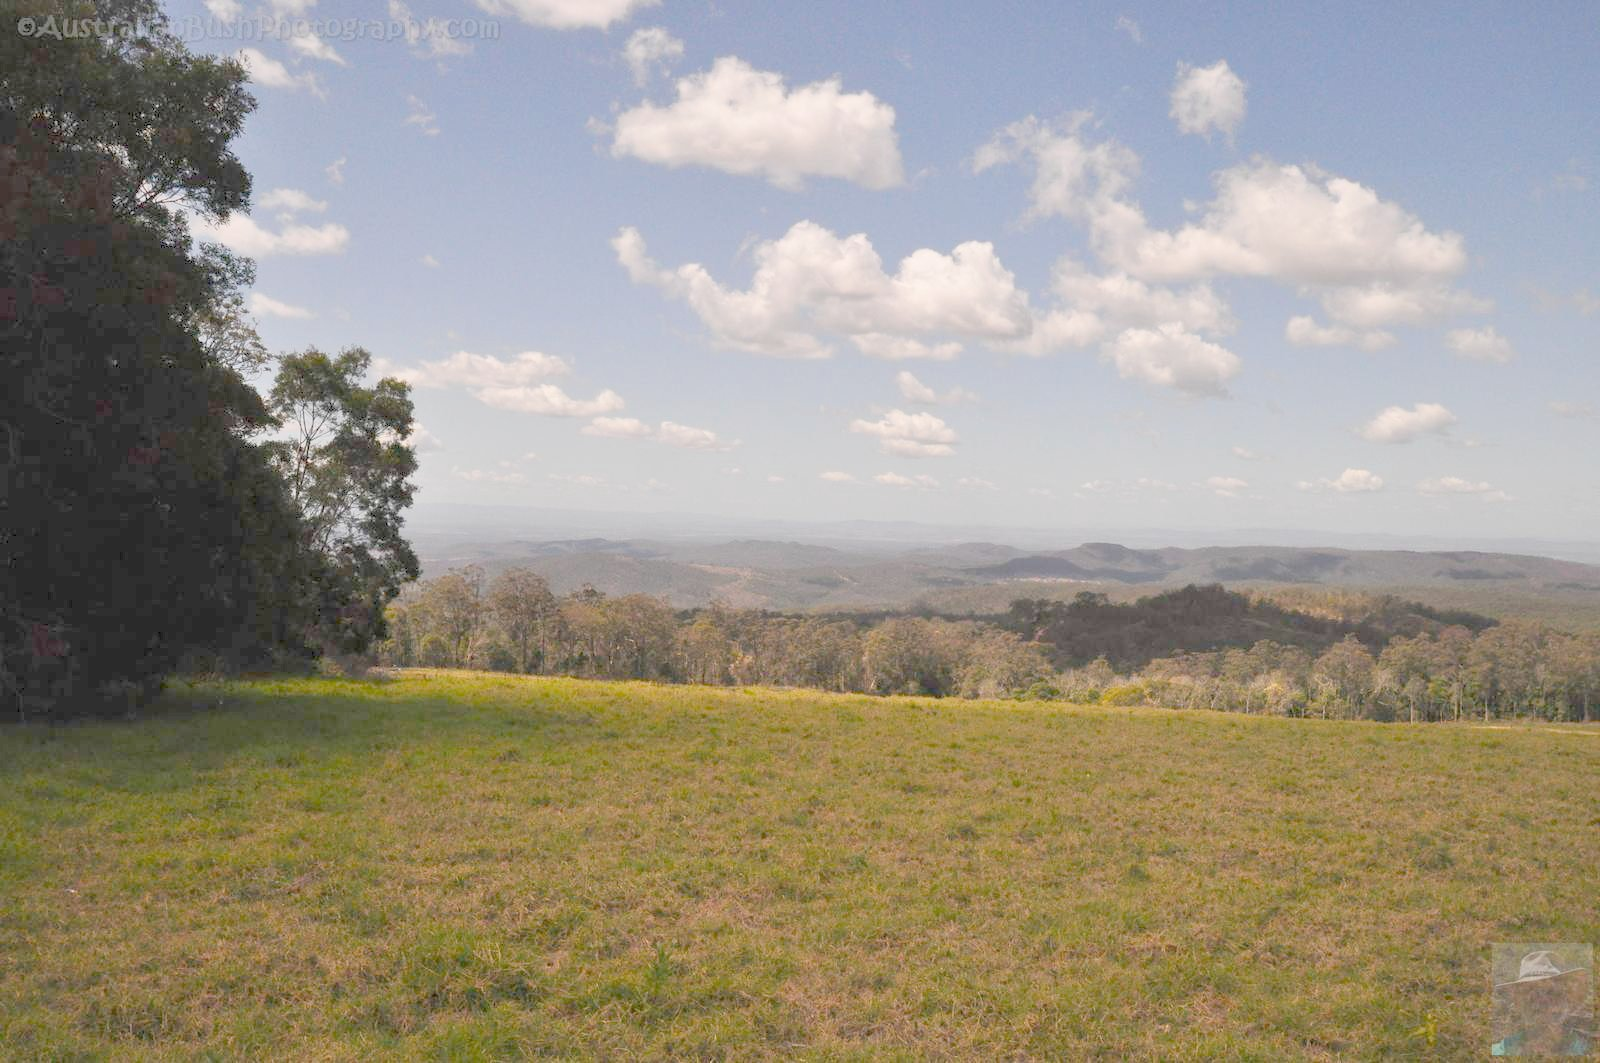 Toowoomba Lookouts – Gus Beutel Lookout